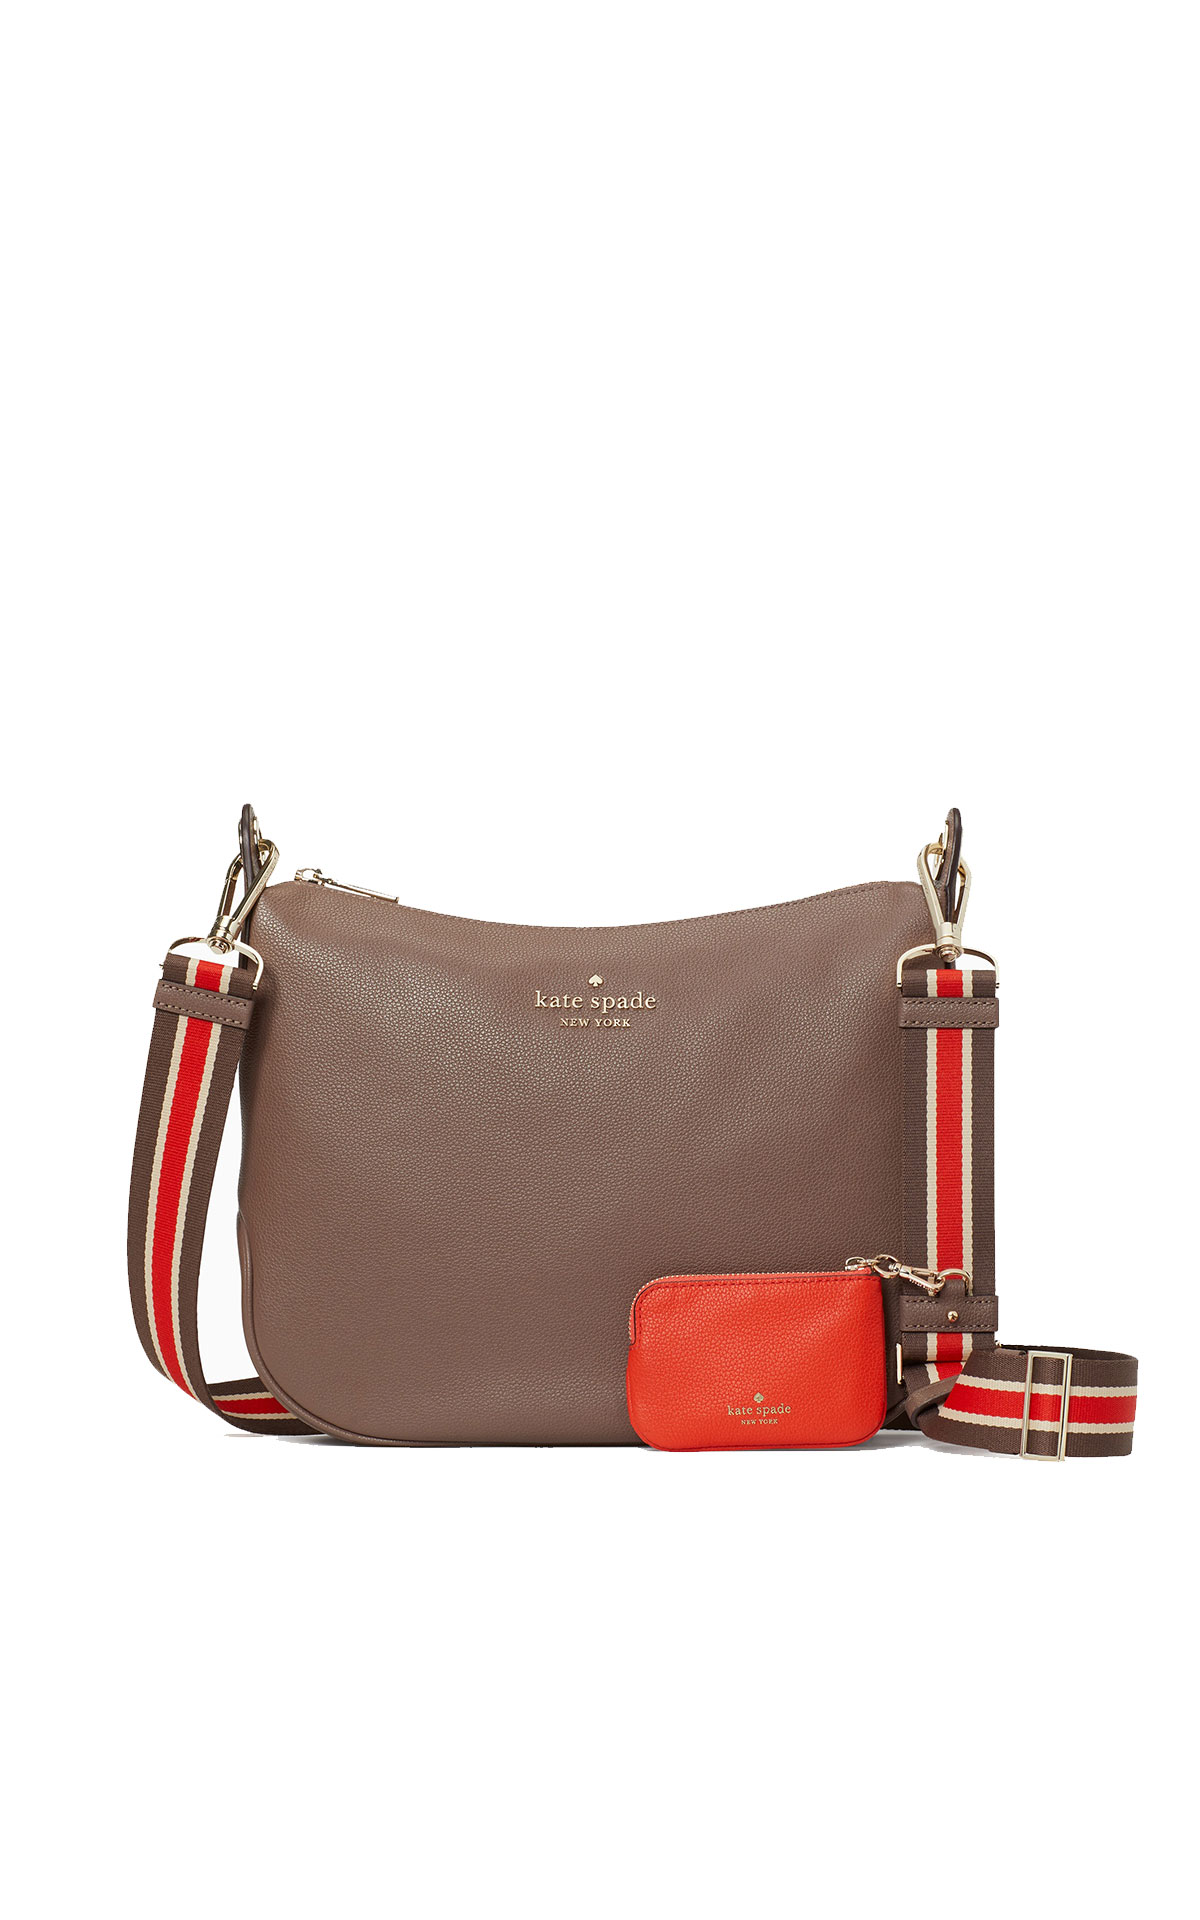 kate spade new york Rosie crossbody - dusk cityscape from Bicester Village